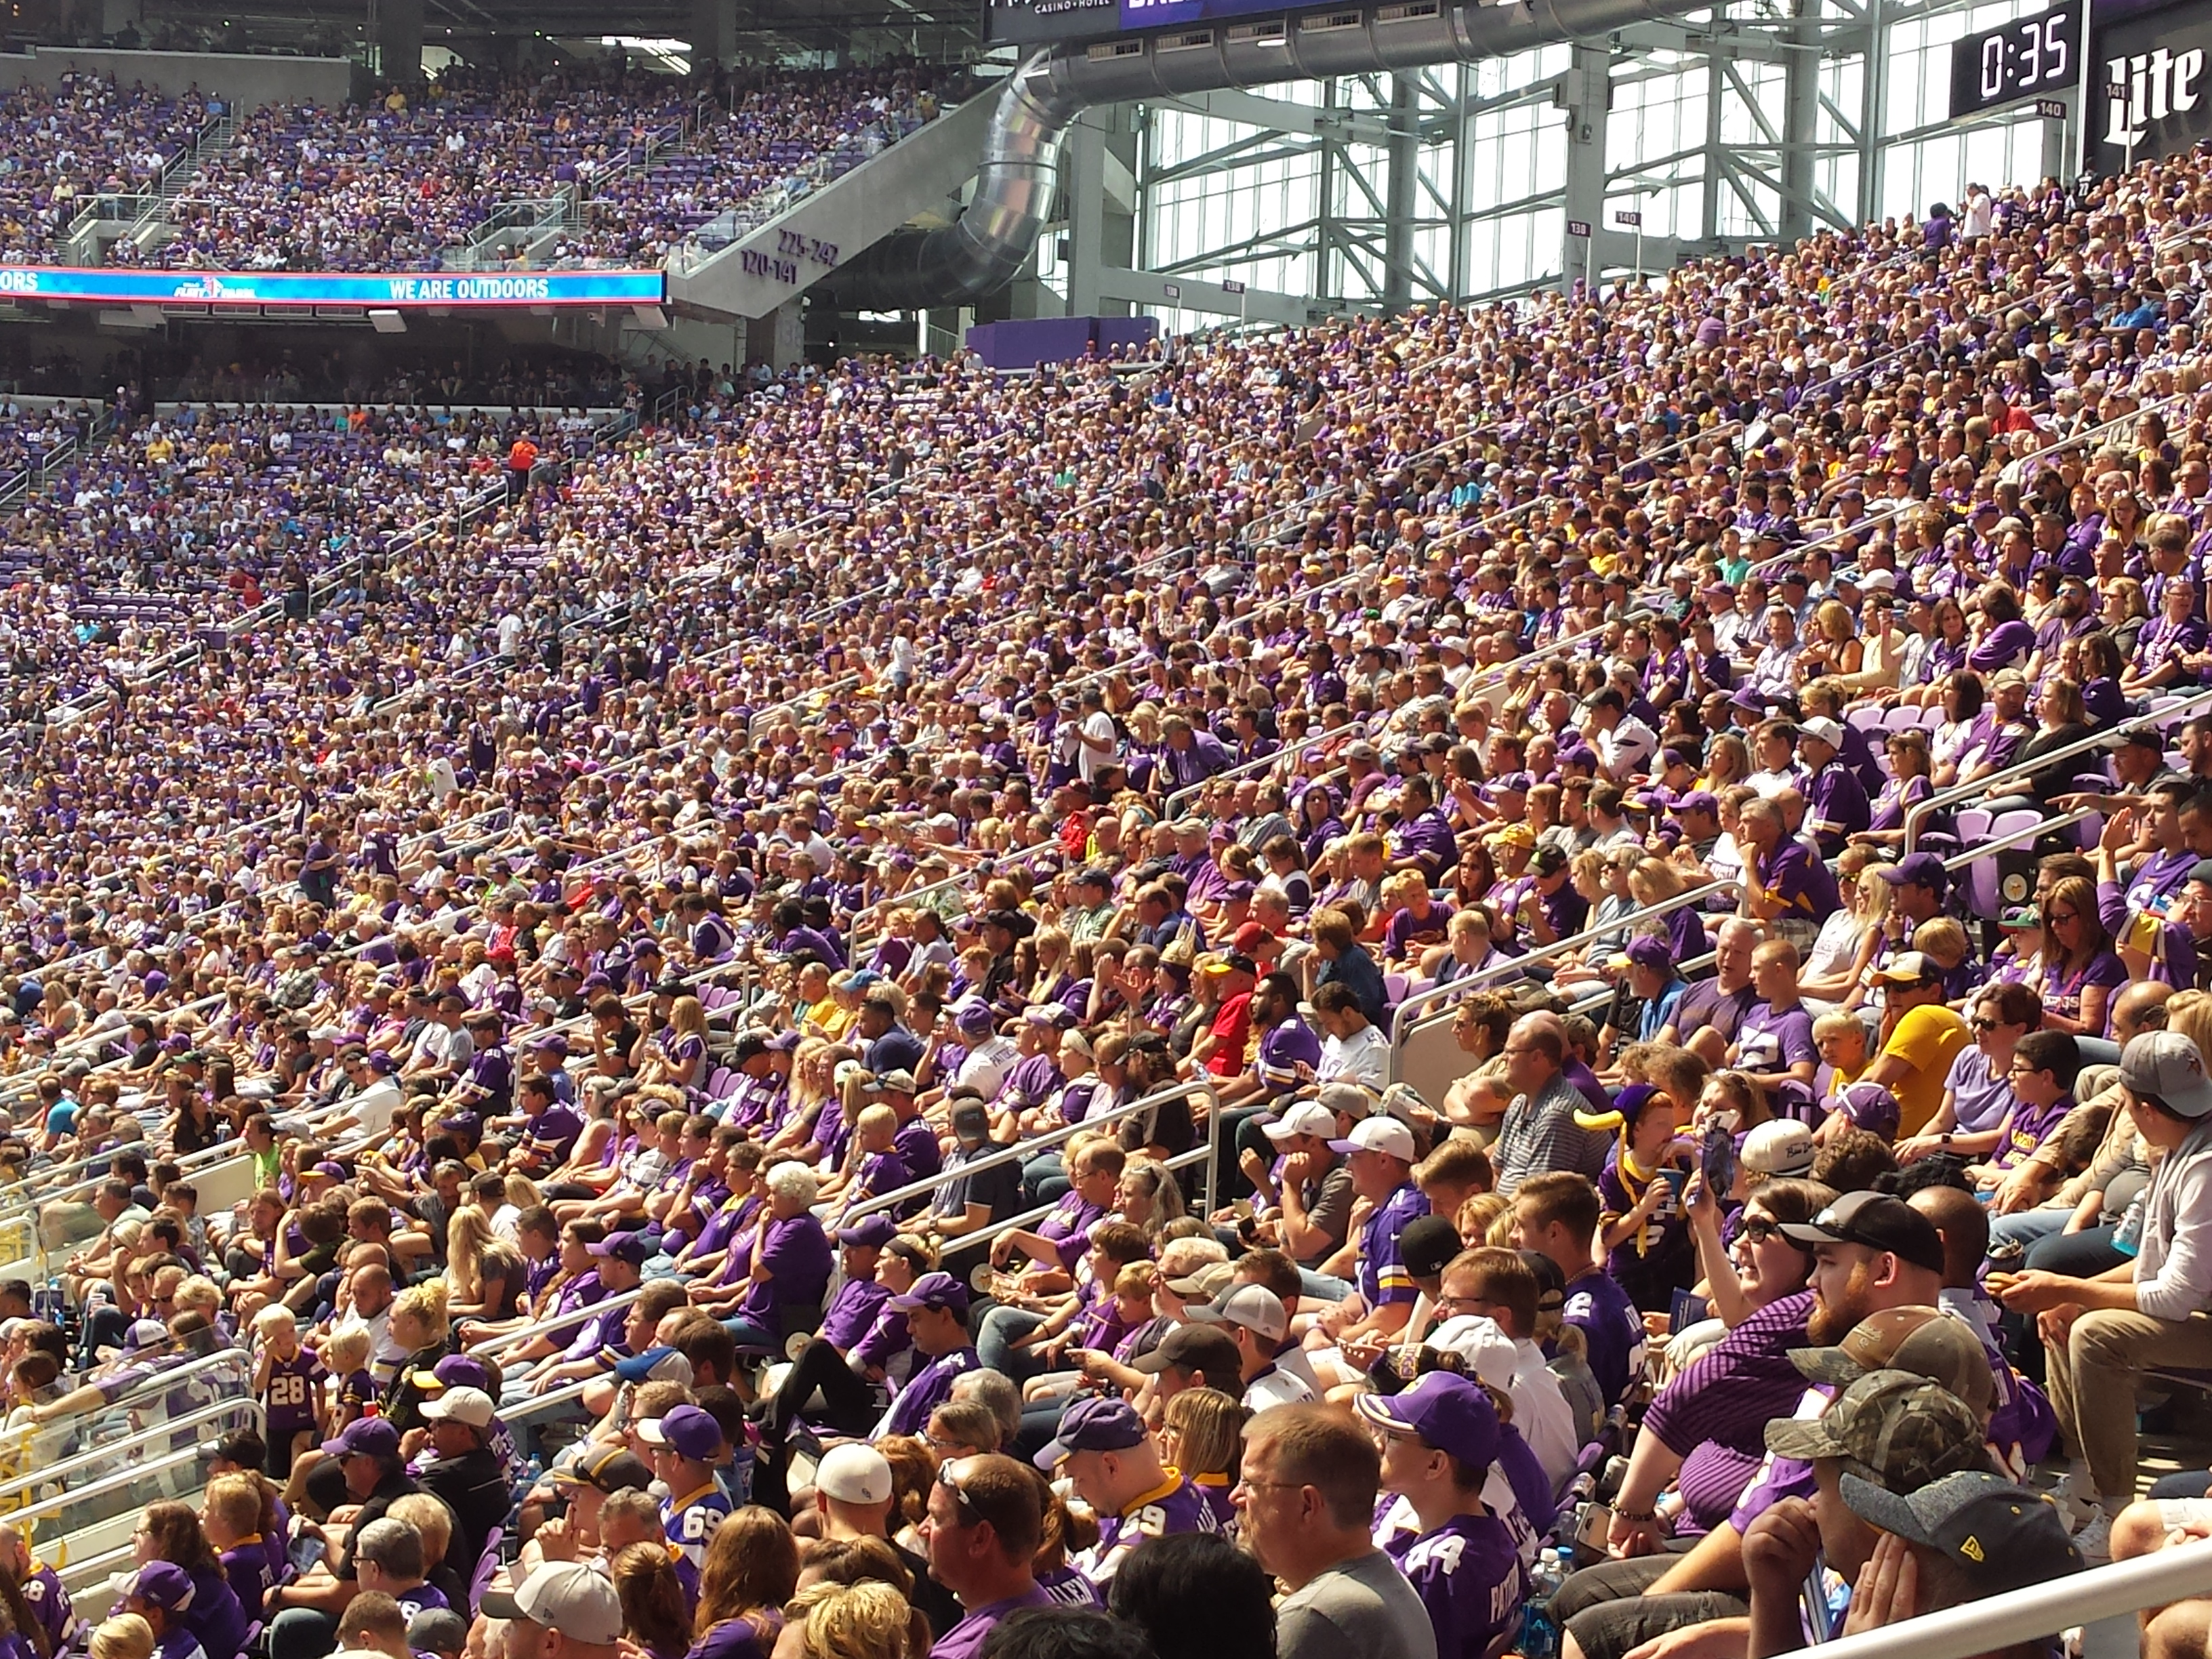 Minnesota Vikings U.S. Bank Stadium First Game - Crowd